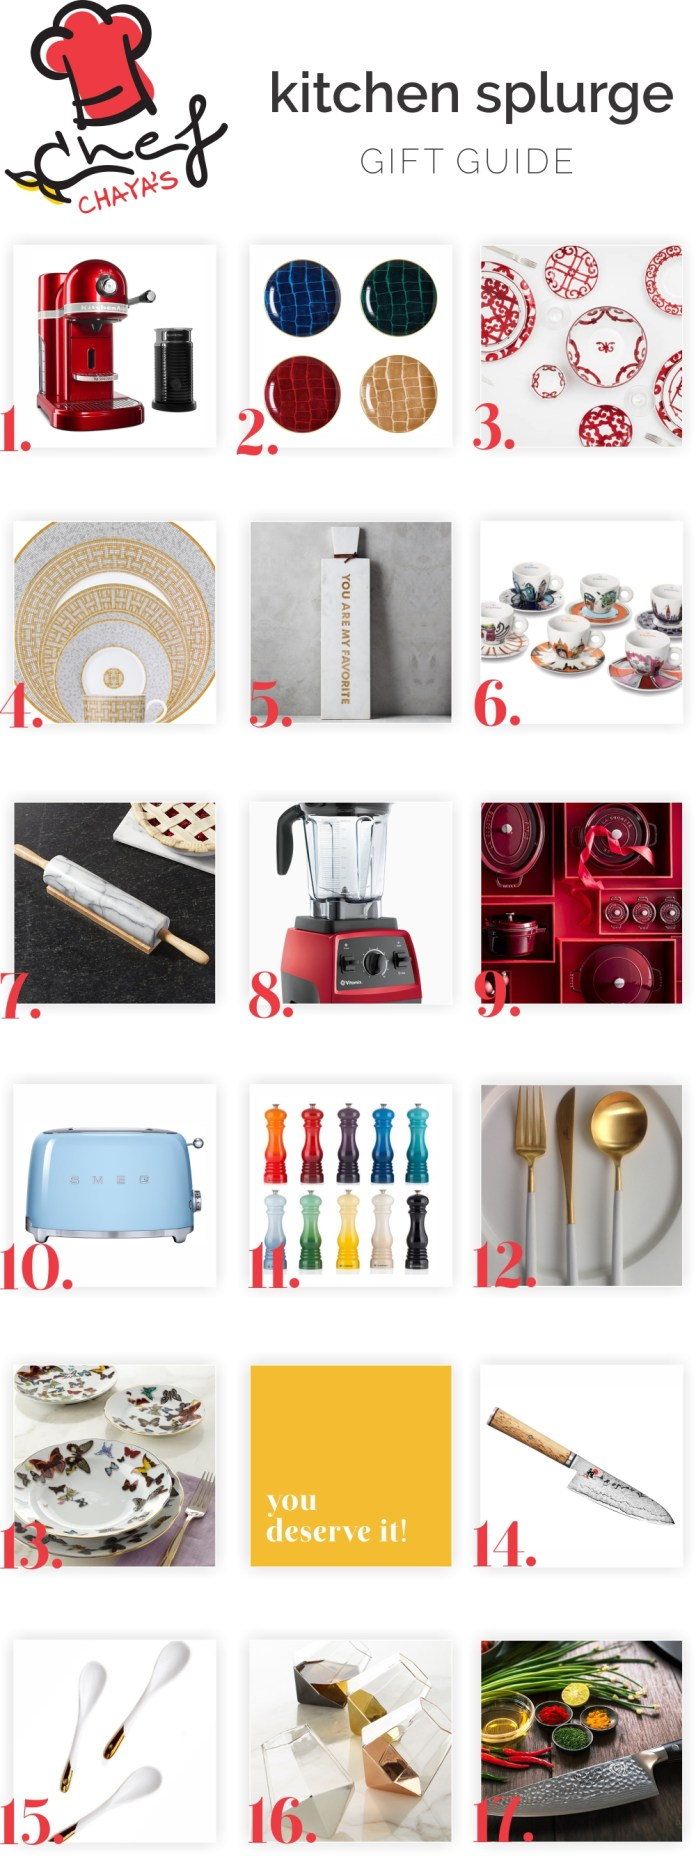 ChefChaya's Luxury Chanukah Gift Guide. See my Kitchen Splurge gift guide on Between Carpools - A Lifestyle blog for the busy Jewish Woman. .